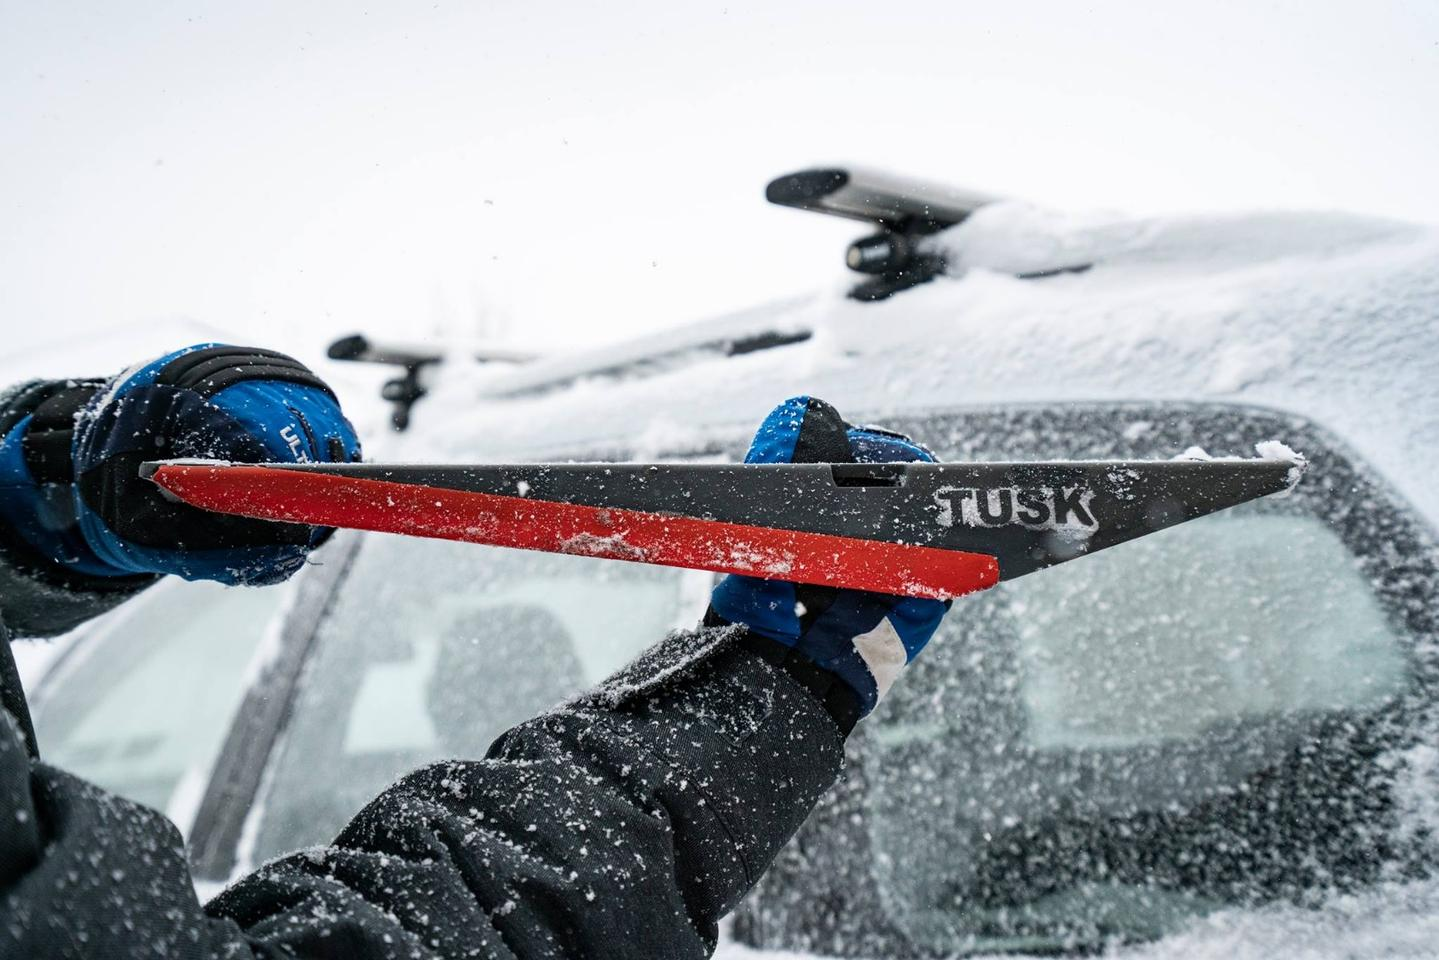 The Tusk is billed as a seven-in-one multitool for all seasons, but winter seems to be where it will be doing most of its heavy lifting